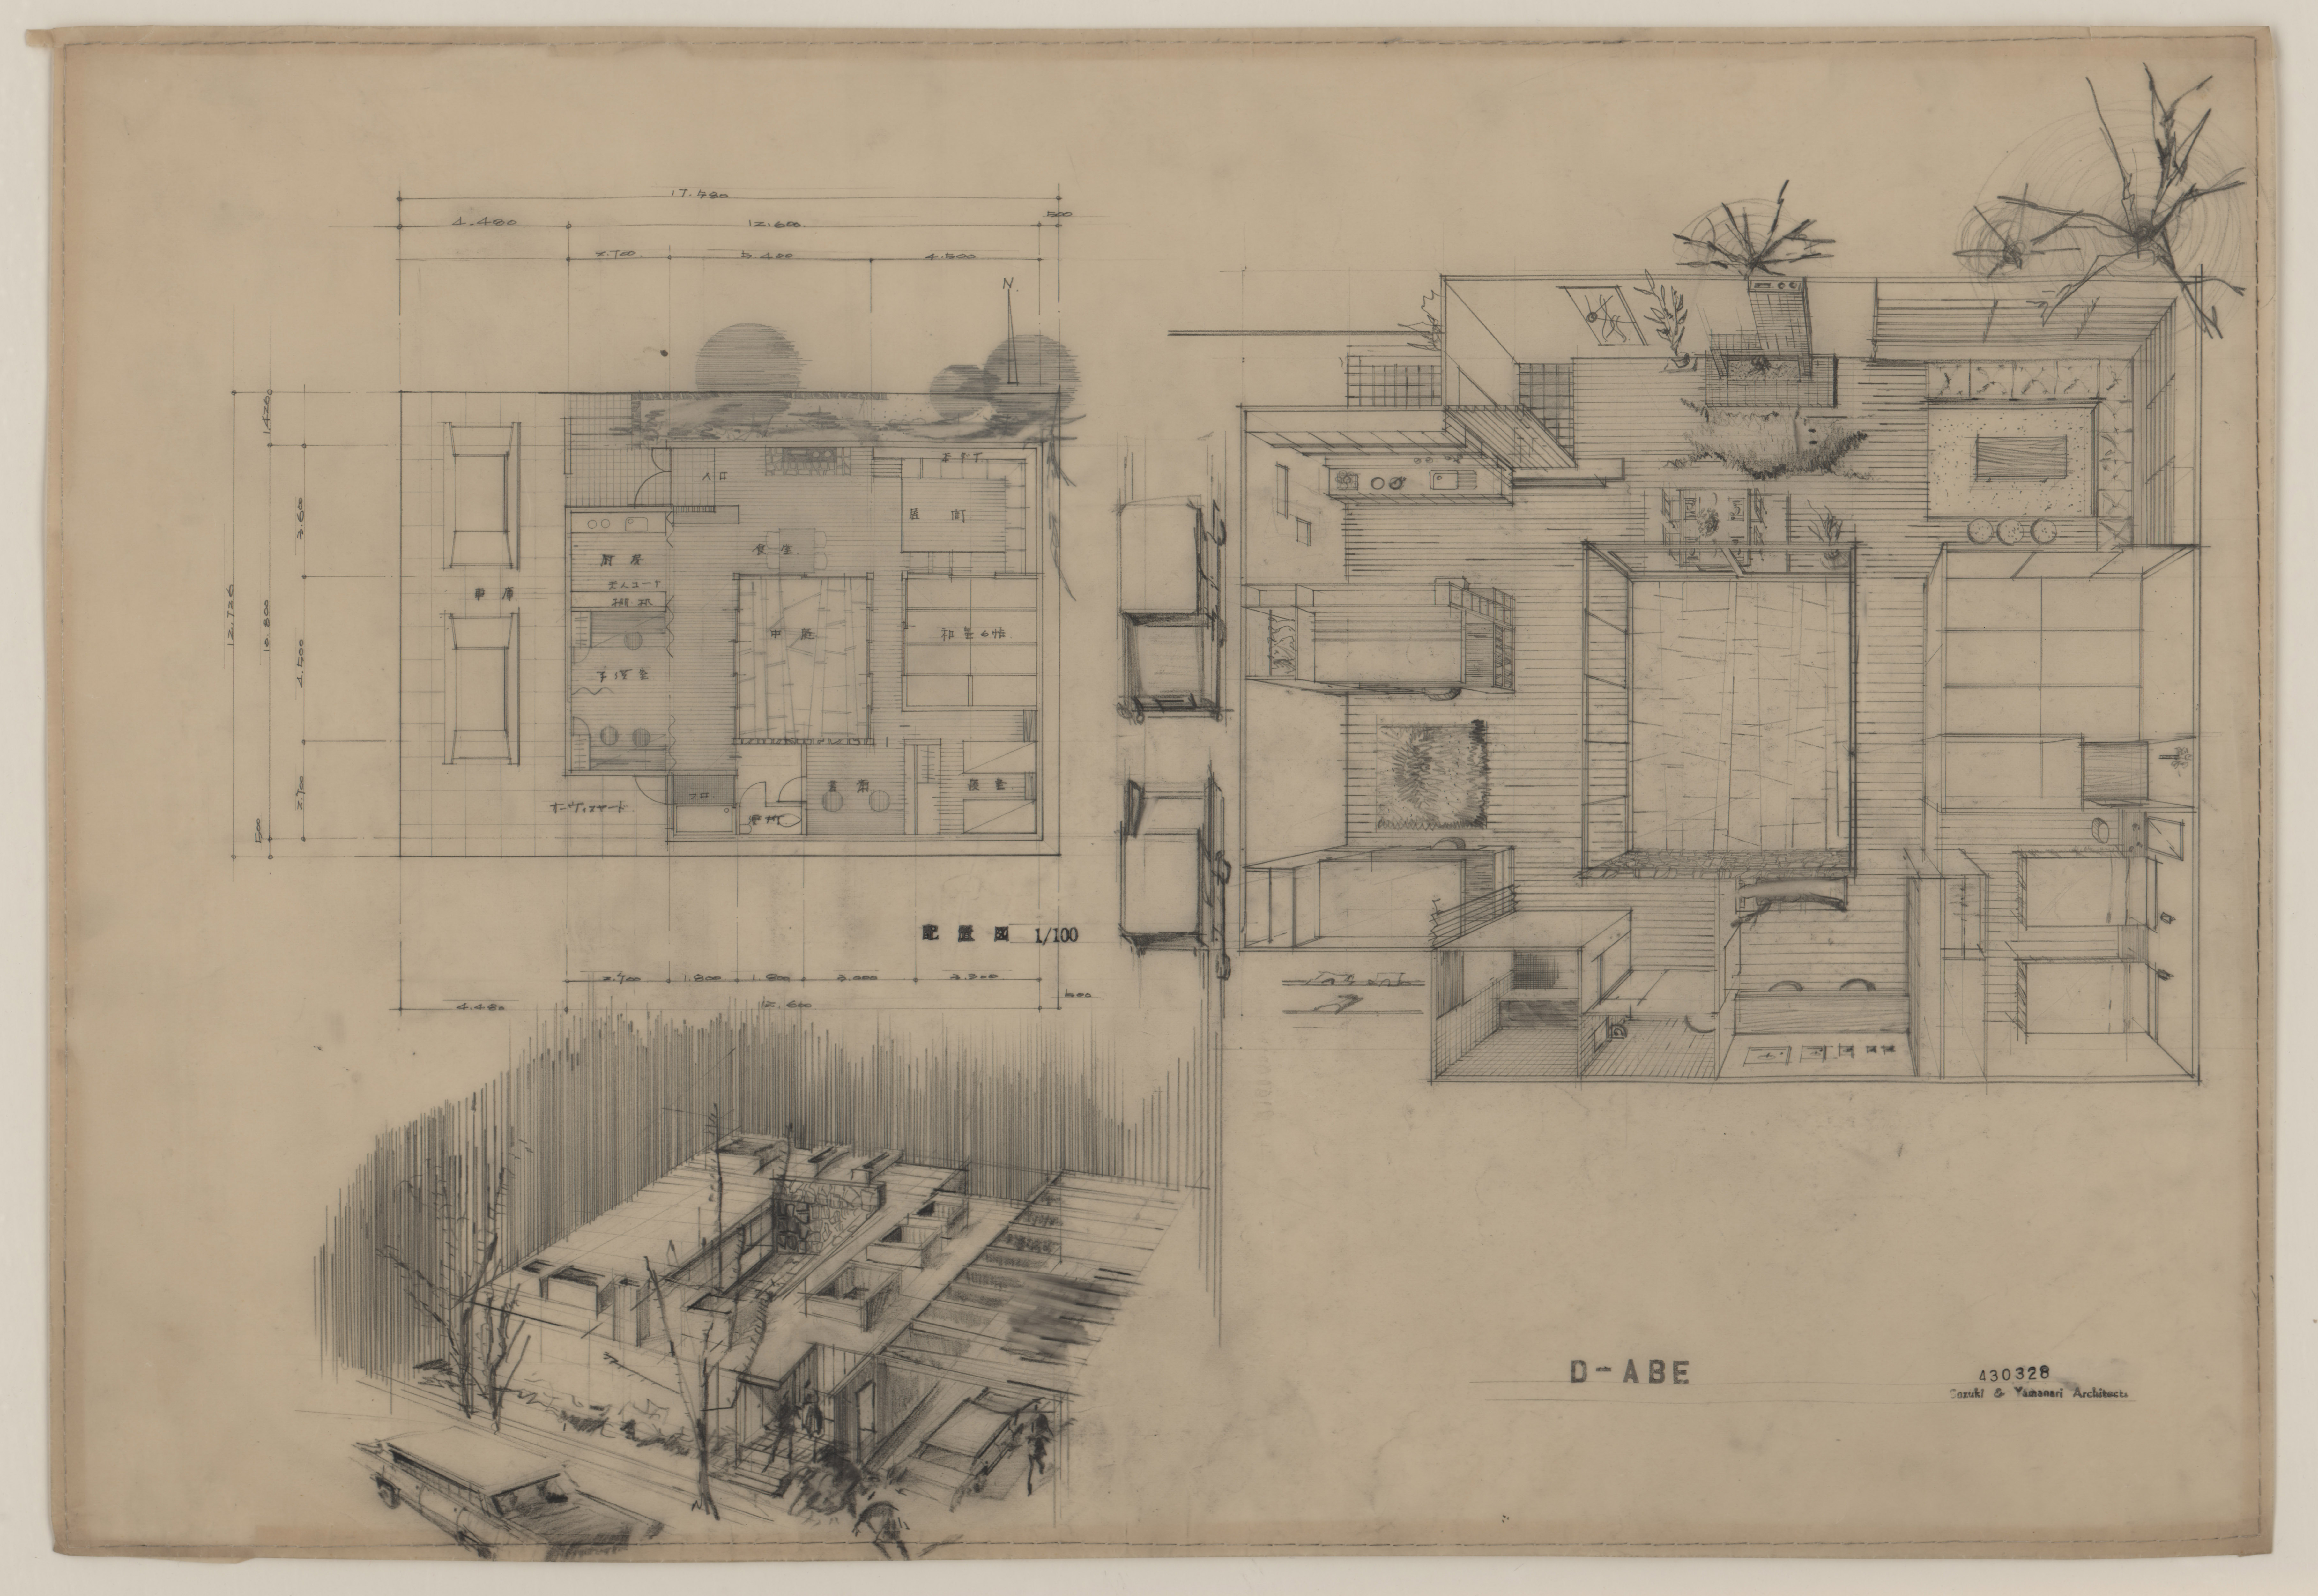 Drawing in pencil on linen, several perspectives of a Japanese house